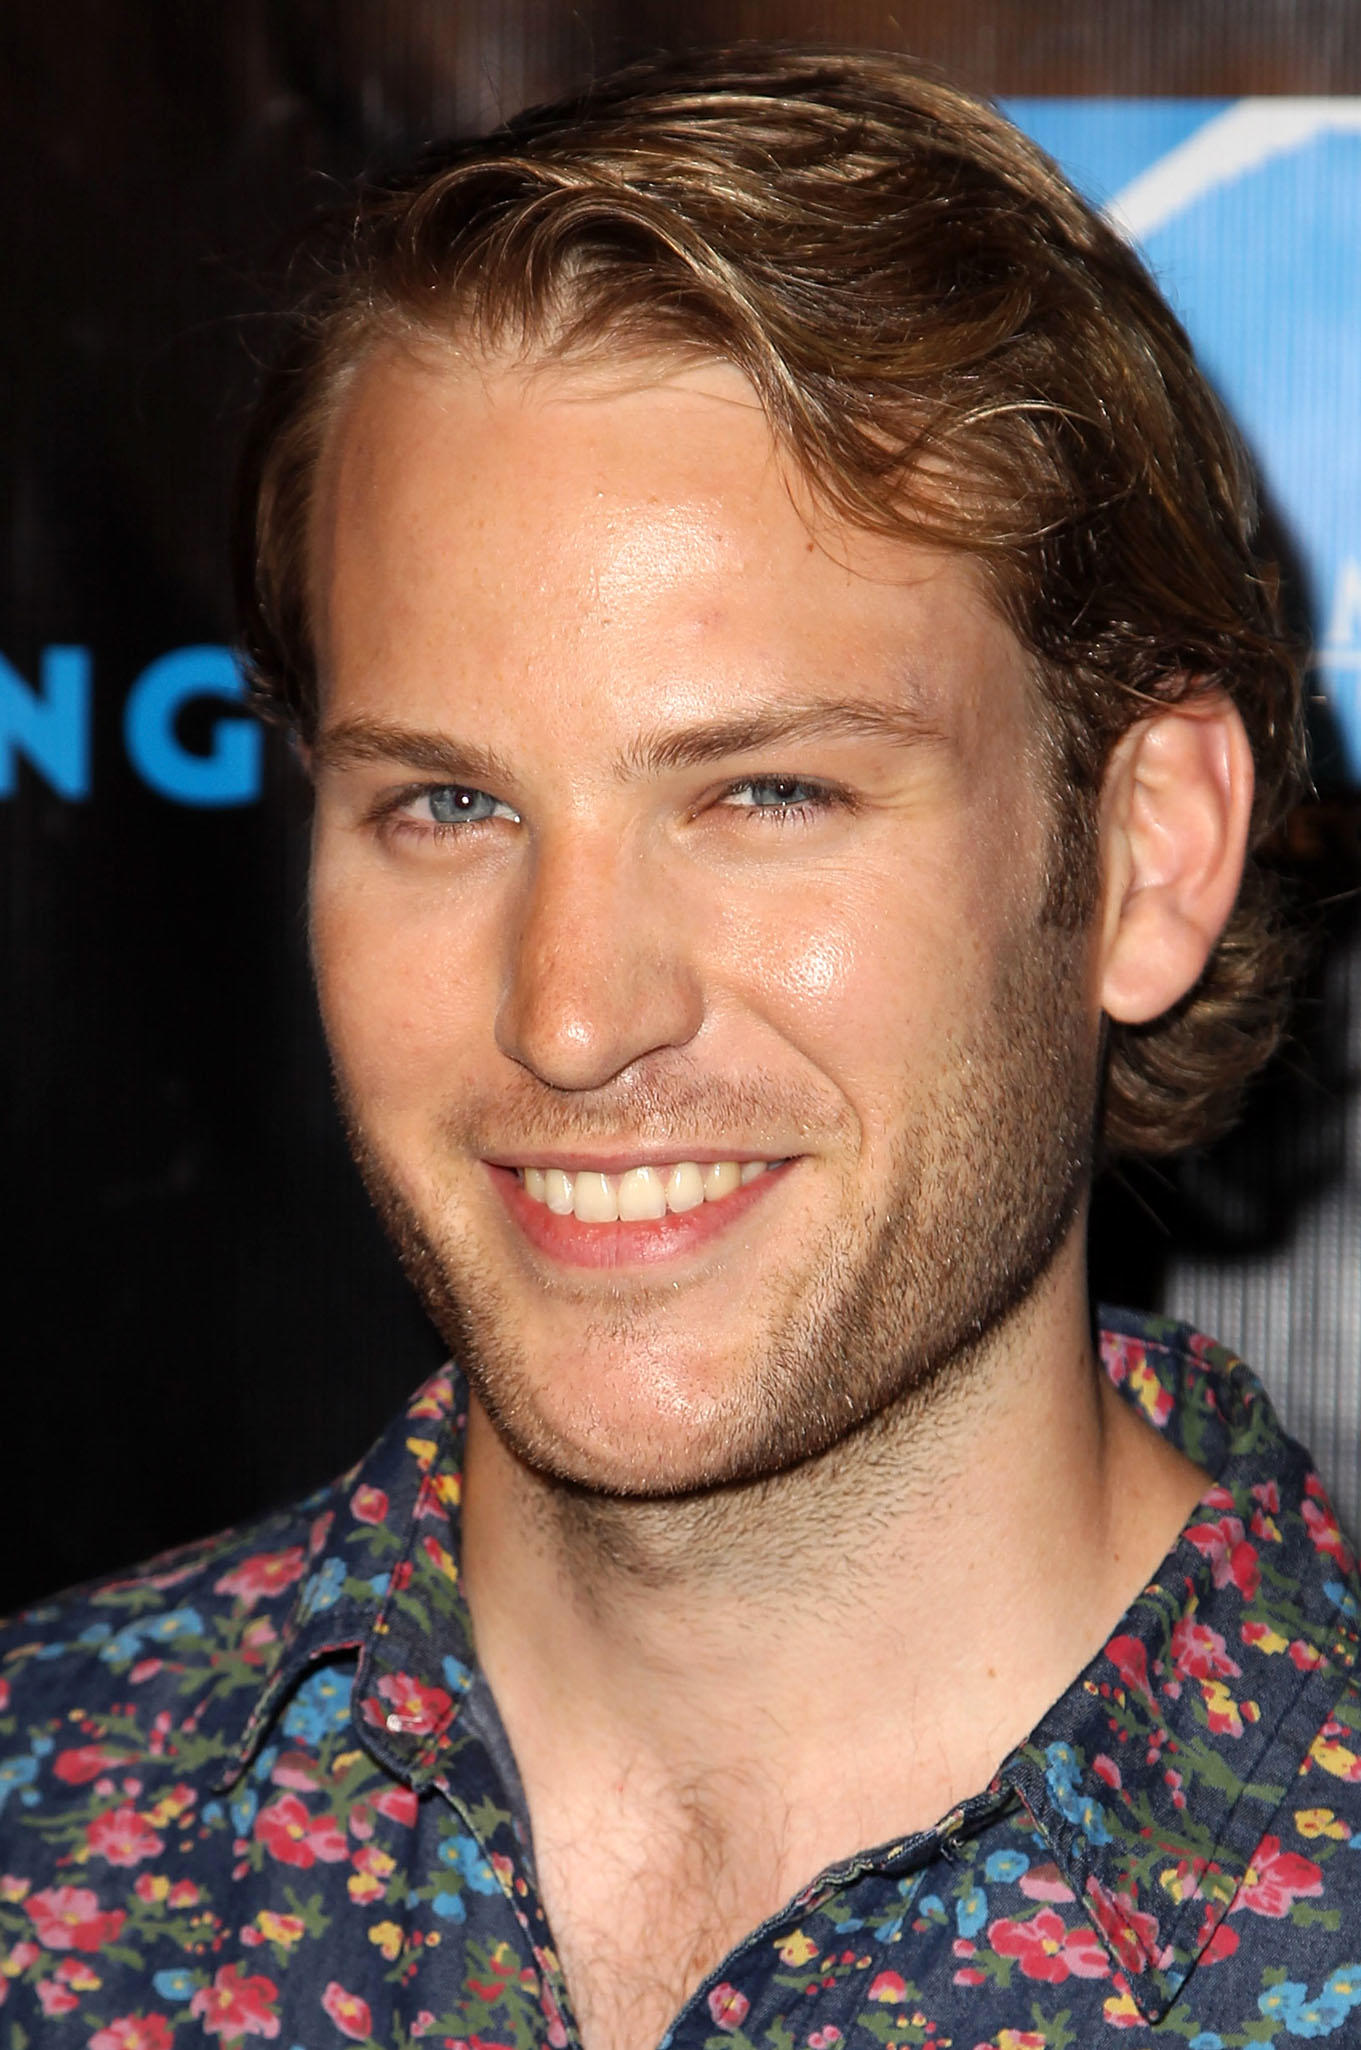 Ben Lamb at the Summit Entertainment press event during Comic-Con International 2013.